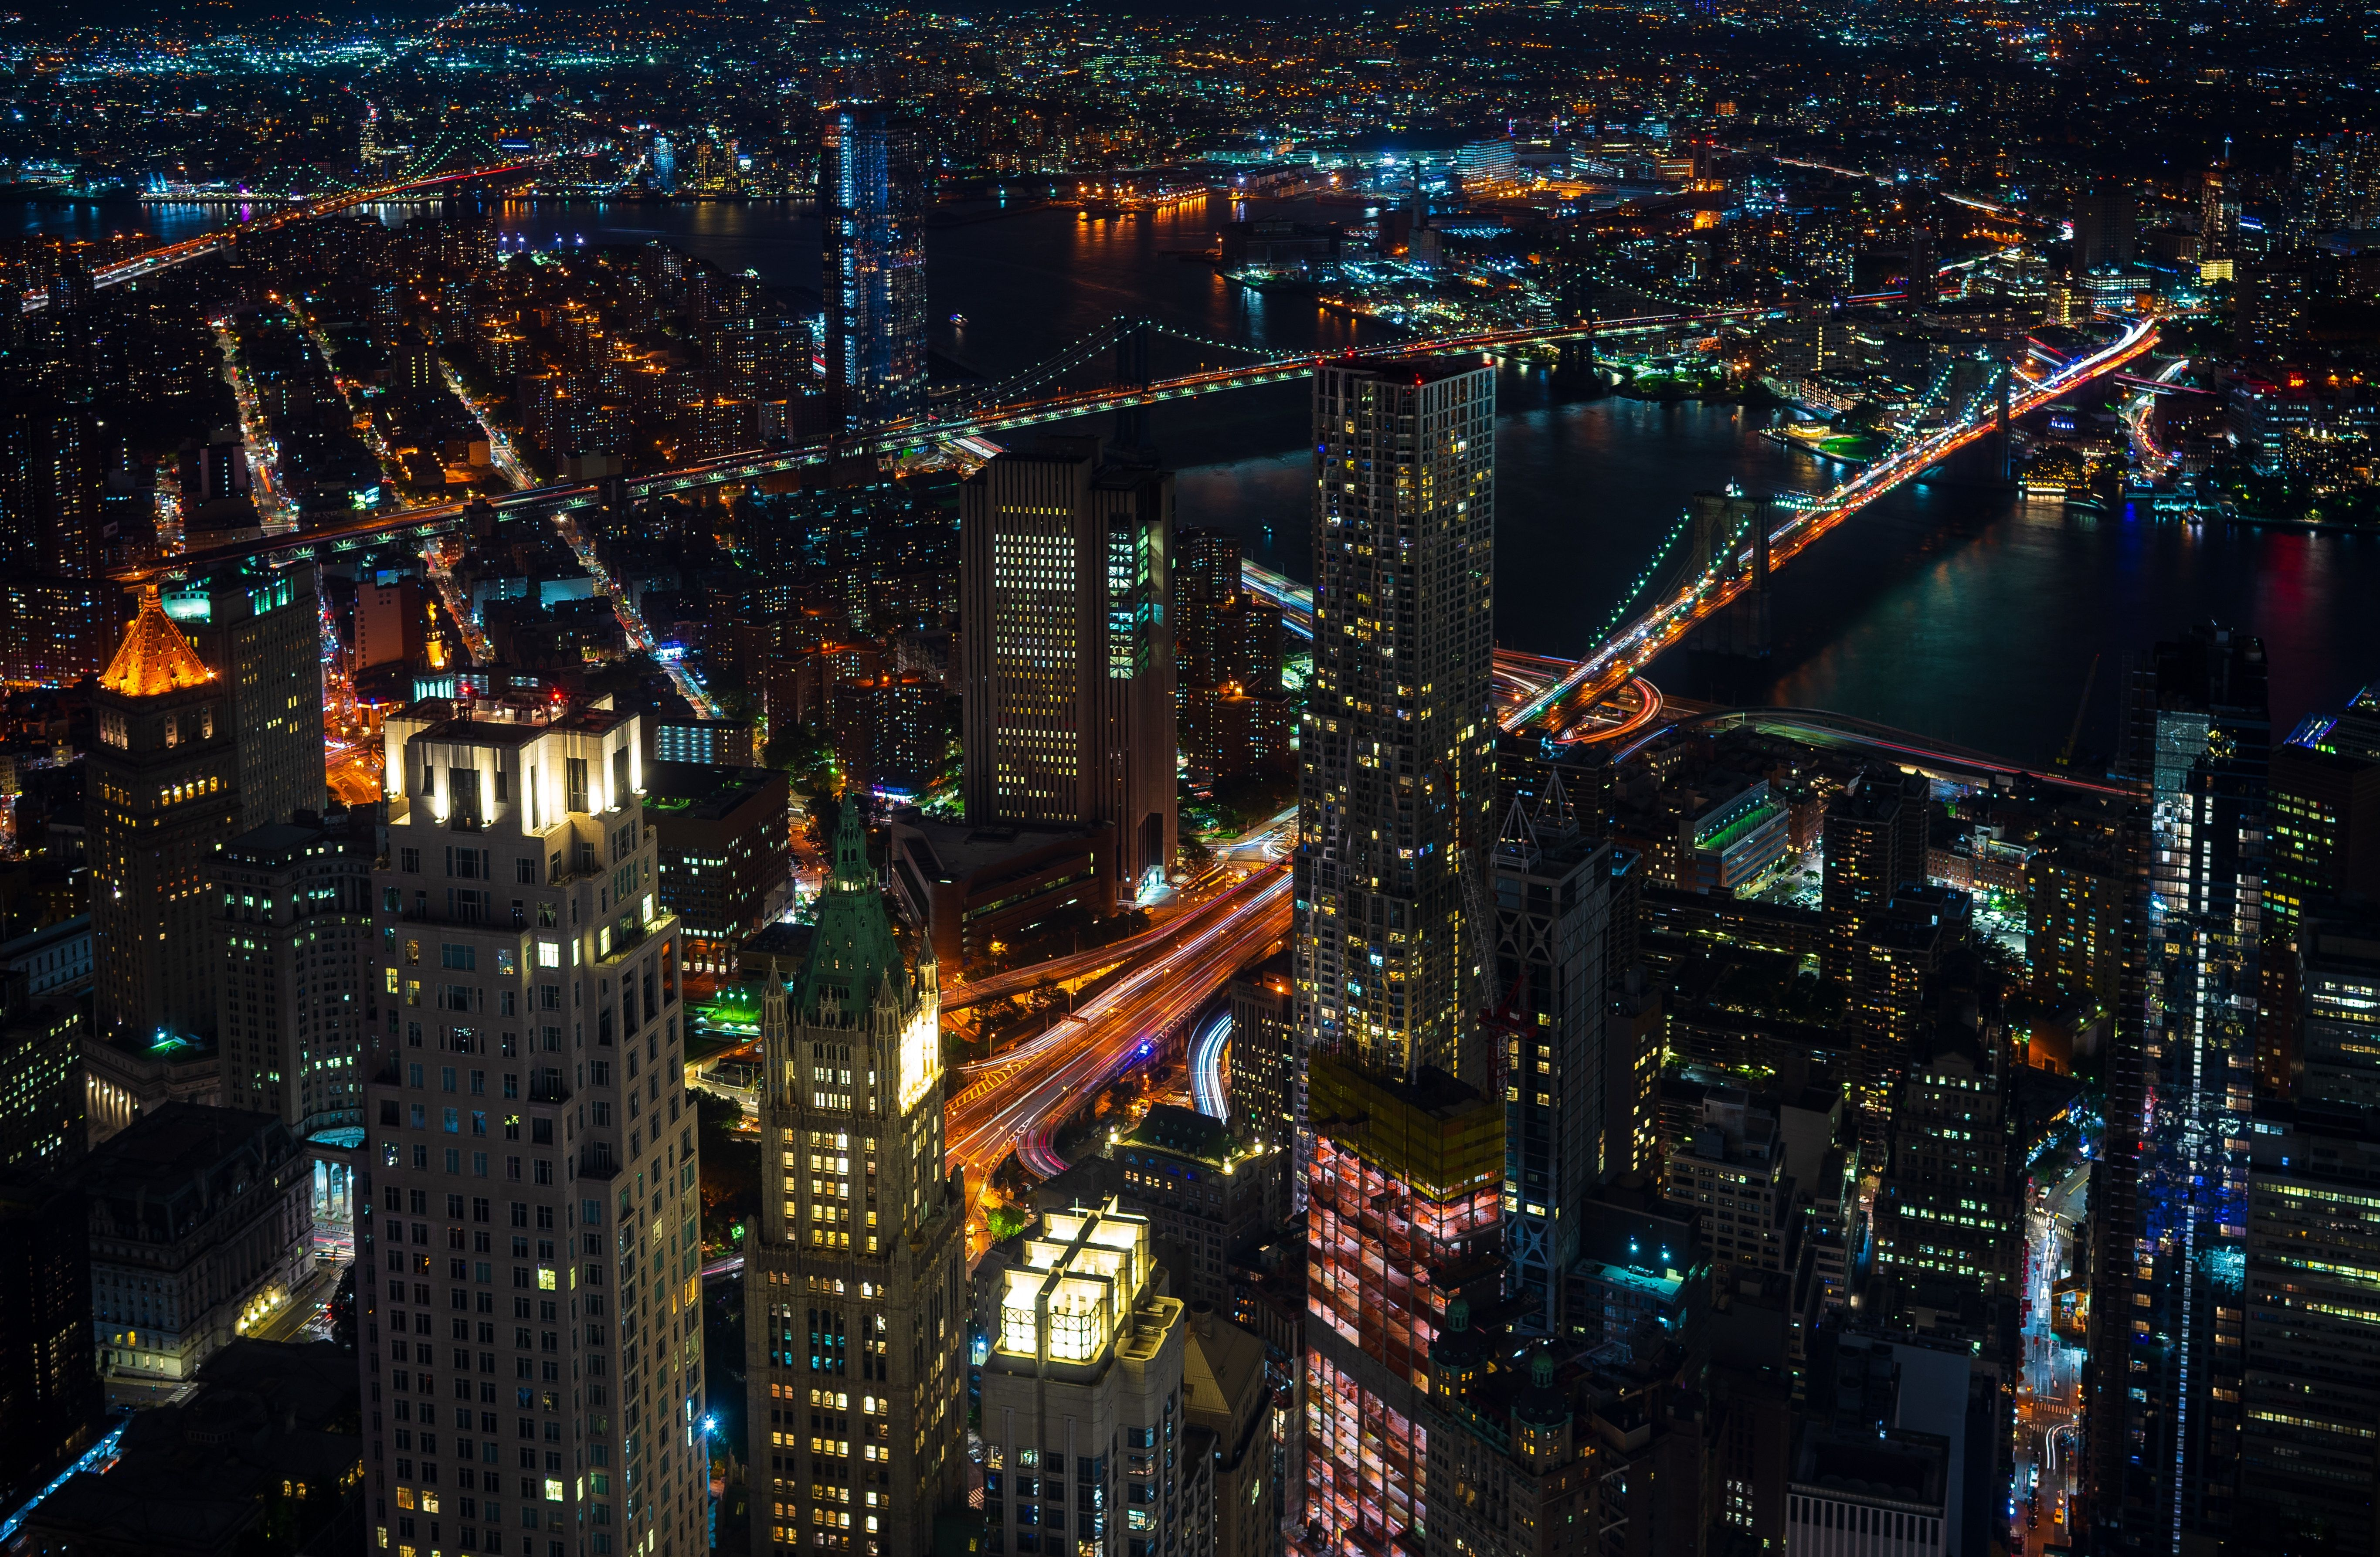 5461x3573 Wallpaper Night City Lights City Skyscrapers Top View New York Usa City Lights At Night Night City City Lights Hd wallpaper city night lights buildings